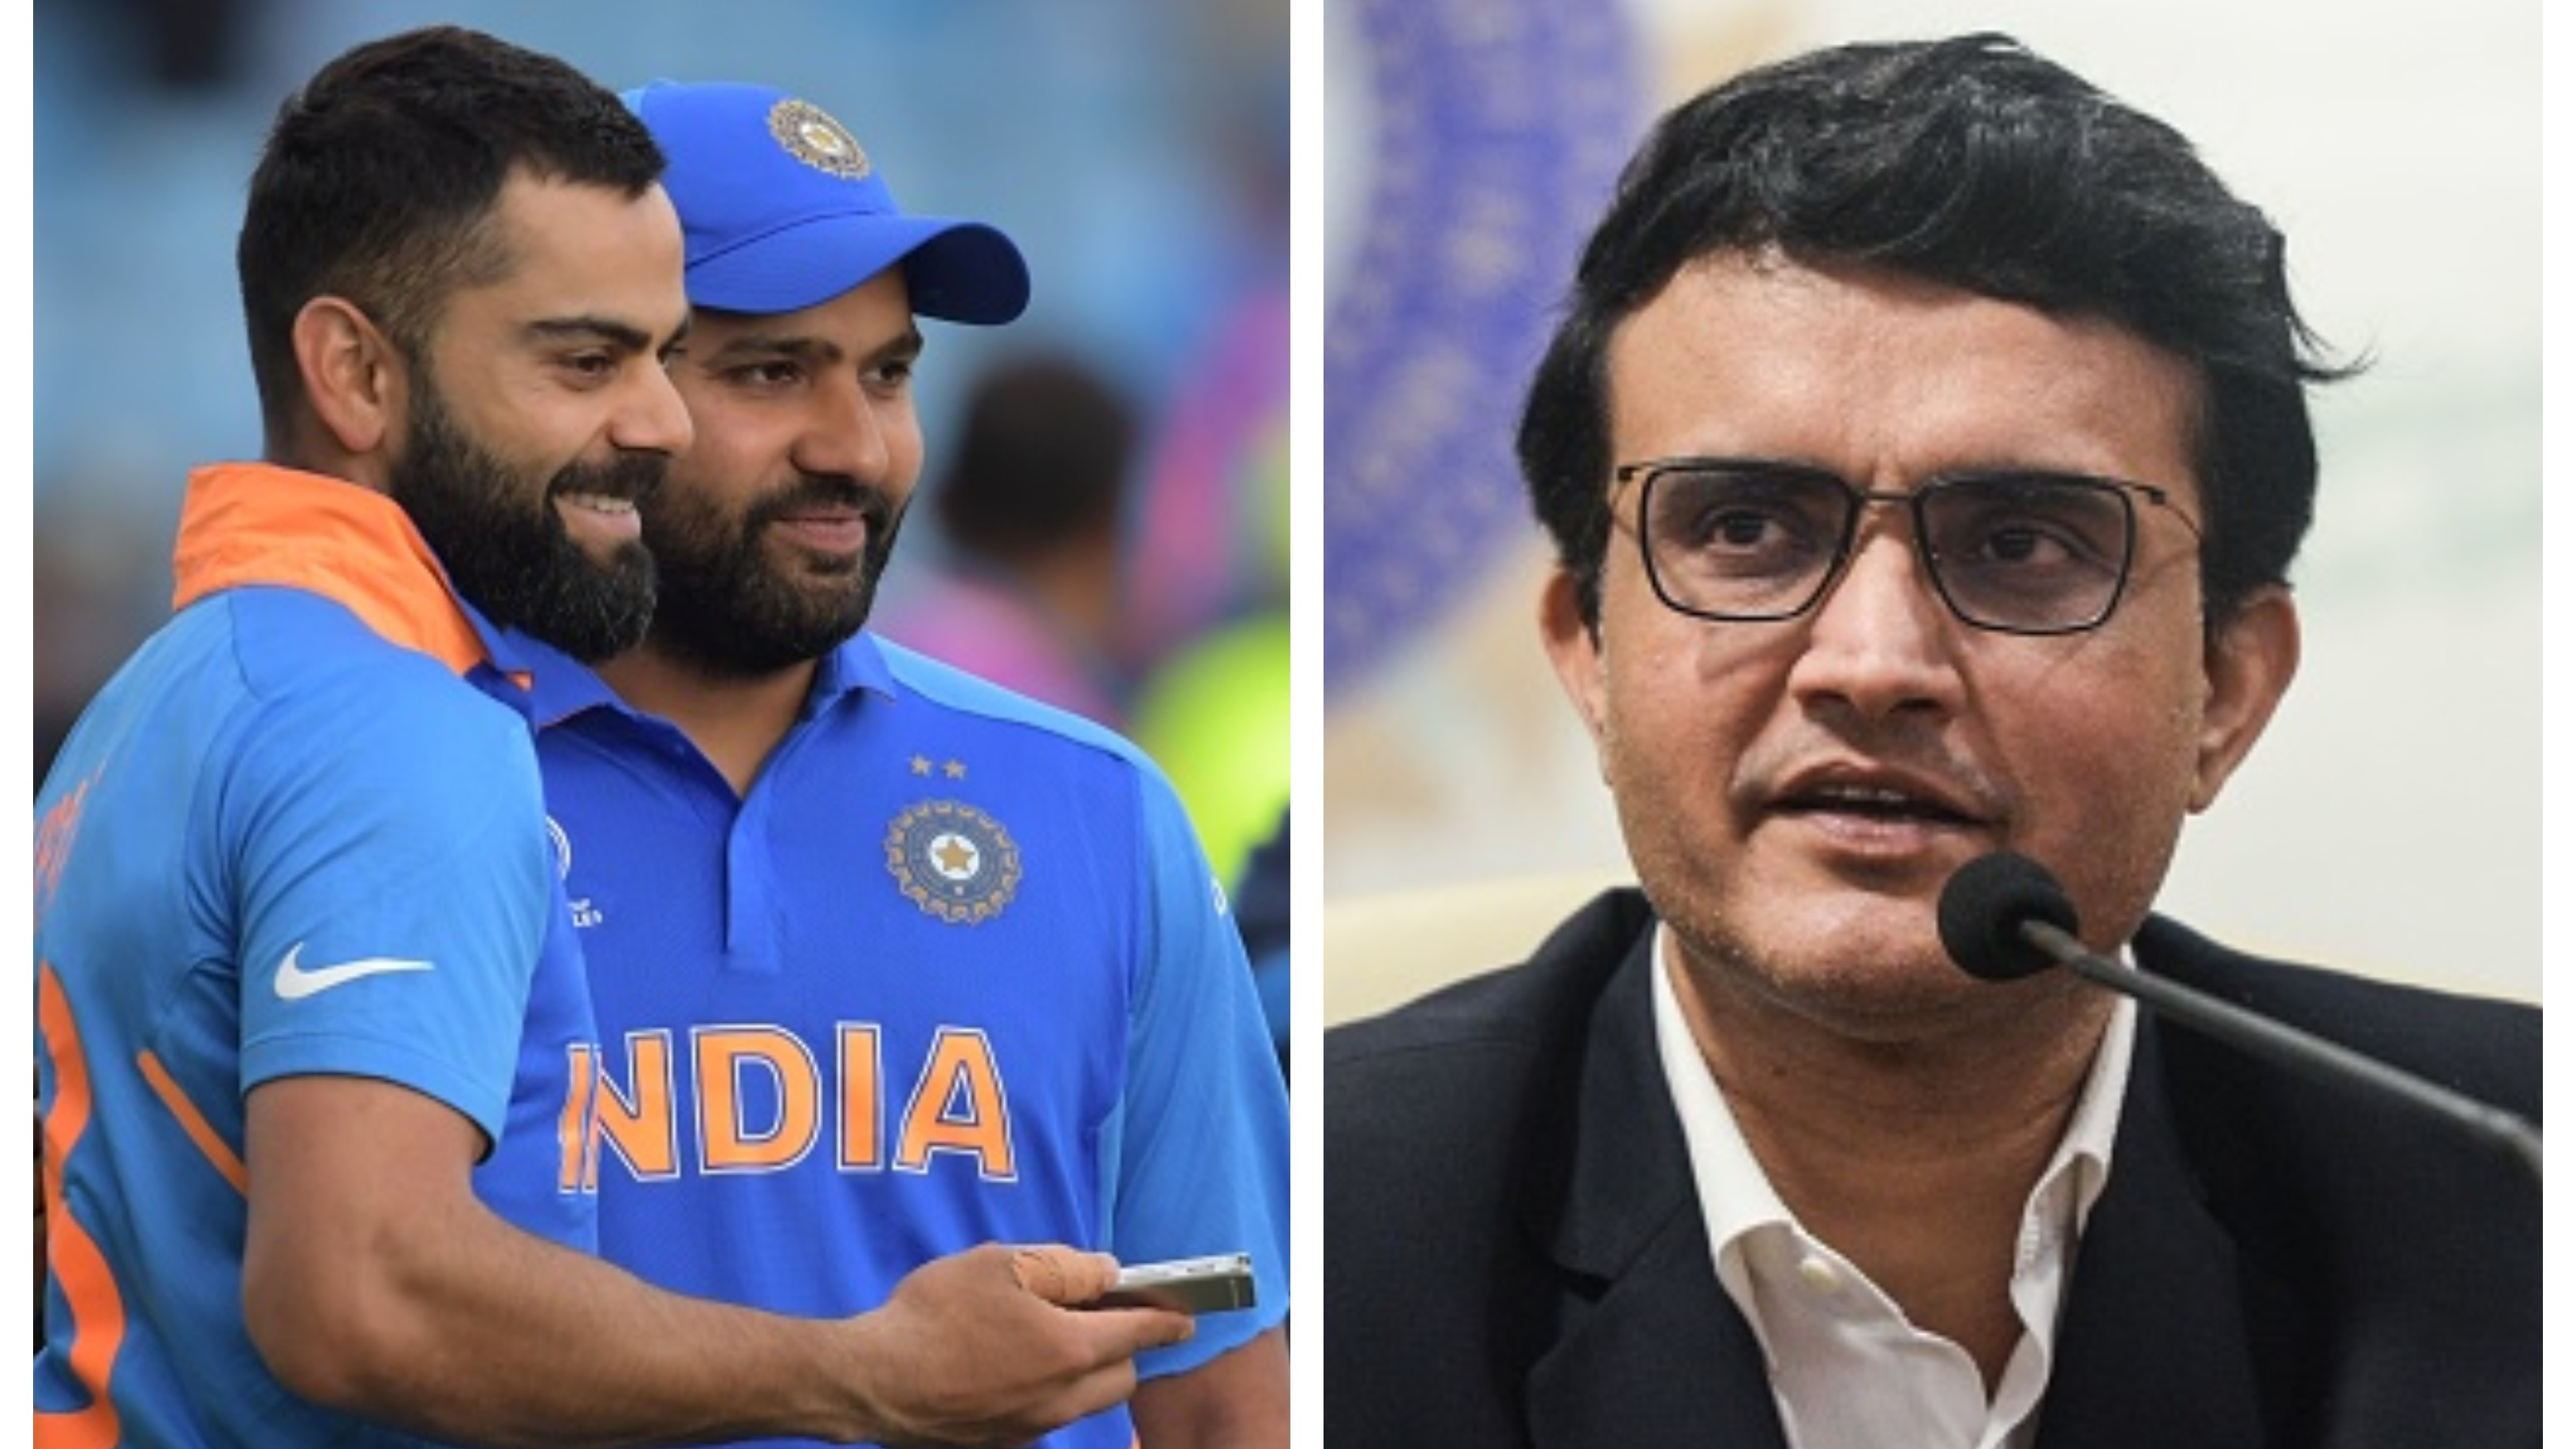 Sourav Ganguly dismisses speculations over